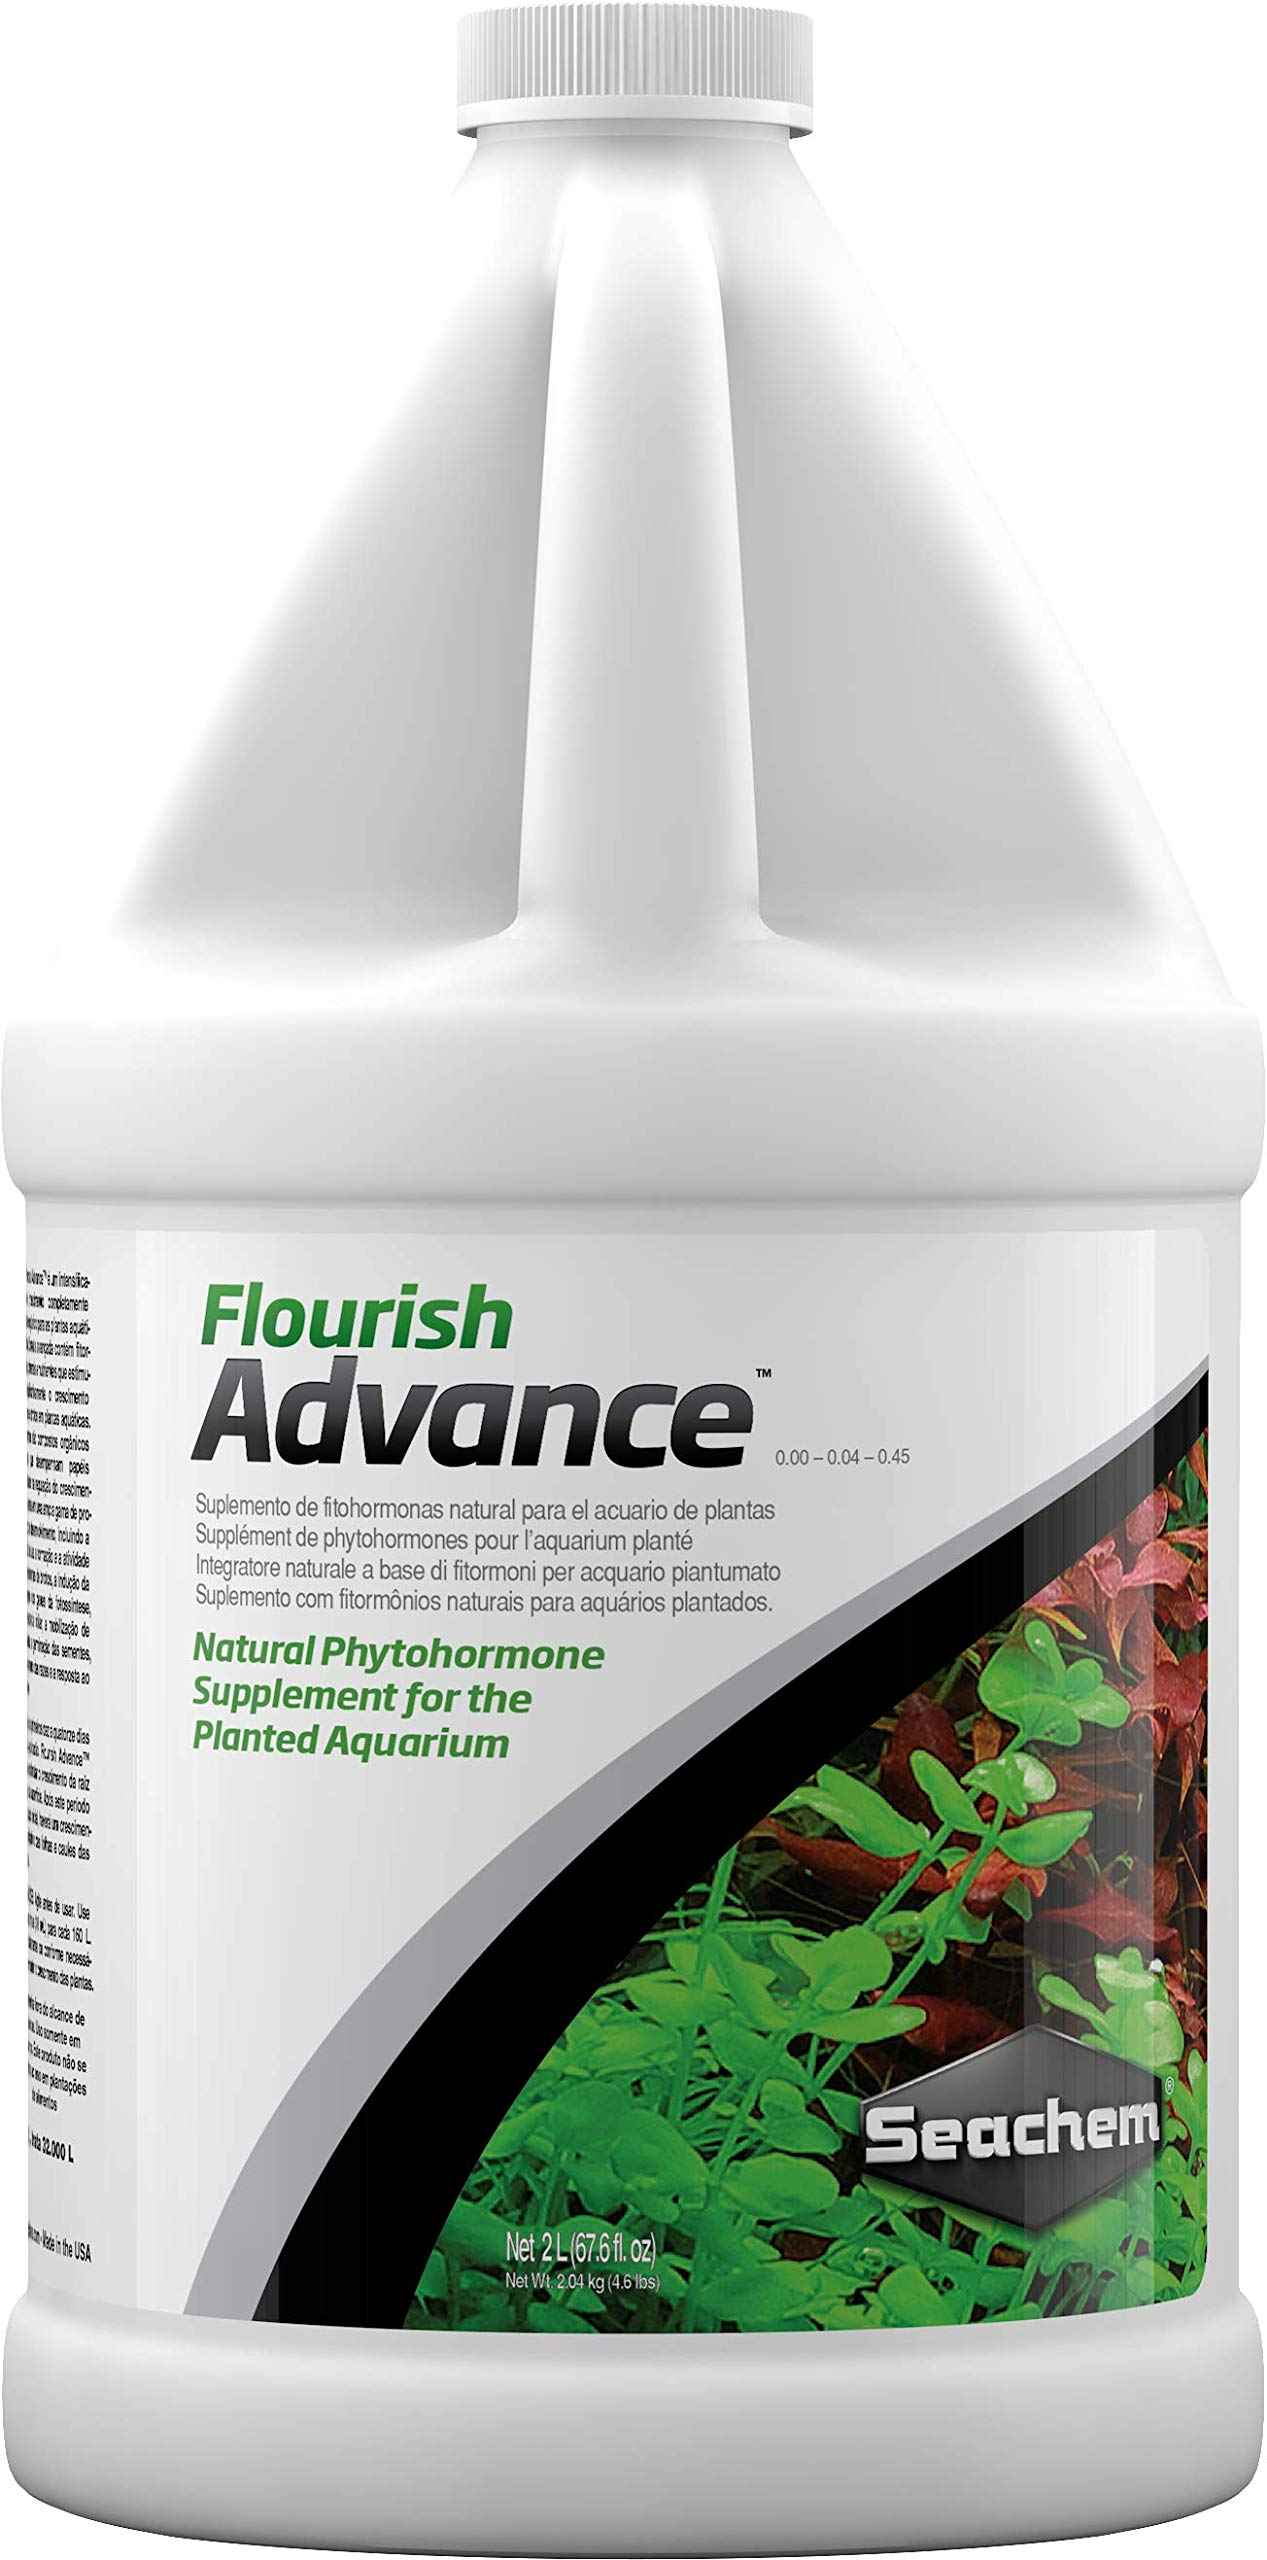 Seachem Flourish Advance Growth Supplement - Aquatic Plant Aid 2 L